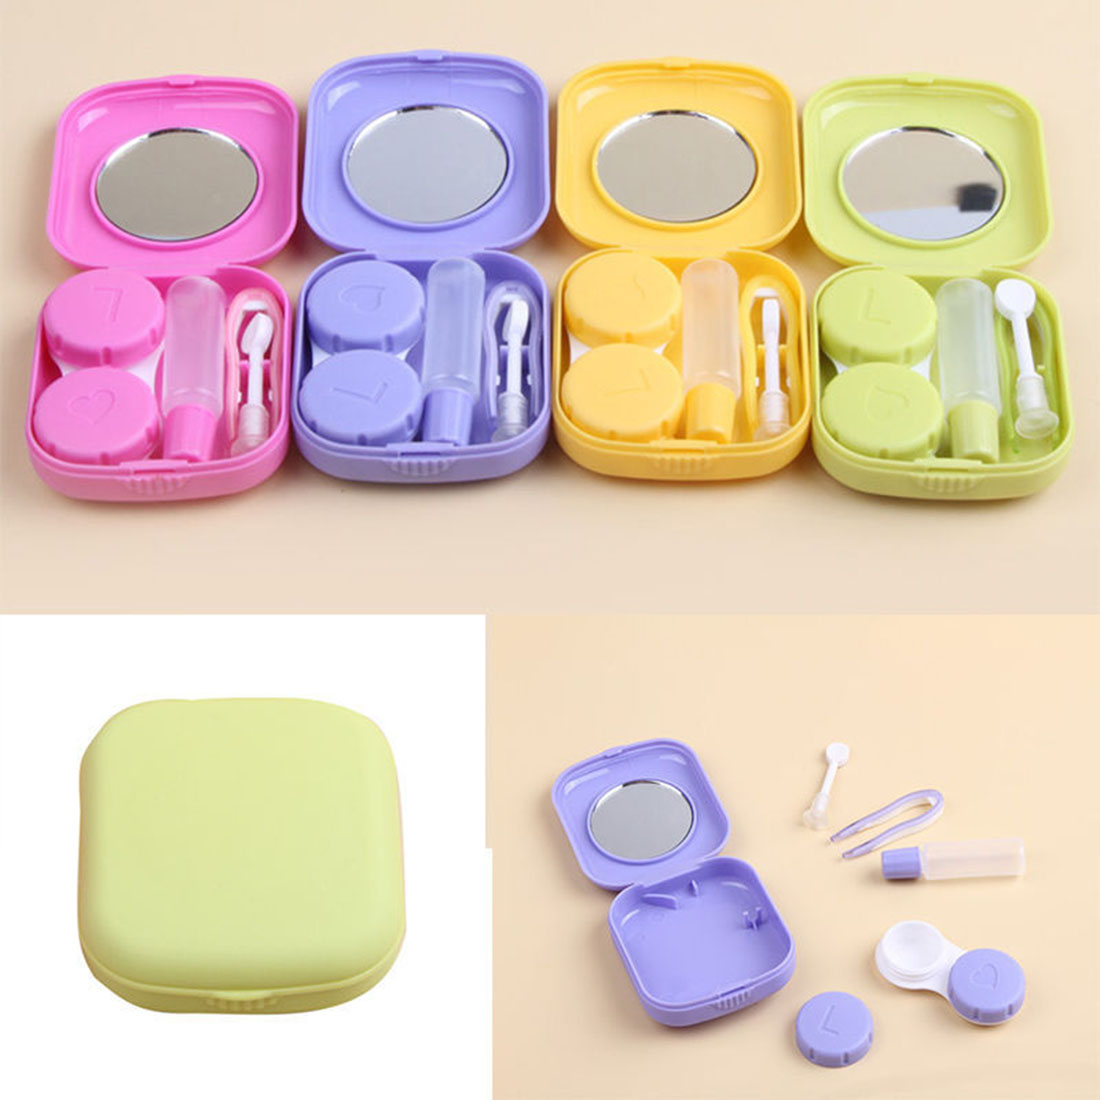 Portable Cute Pocket Mini Contact Lens Case Travel Kit Mirror Container 5Colors baby toys